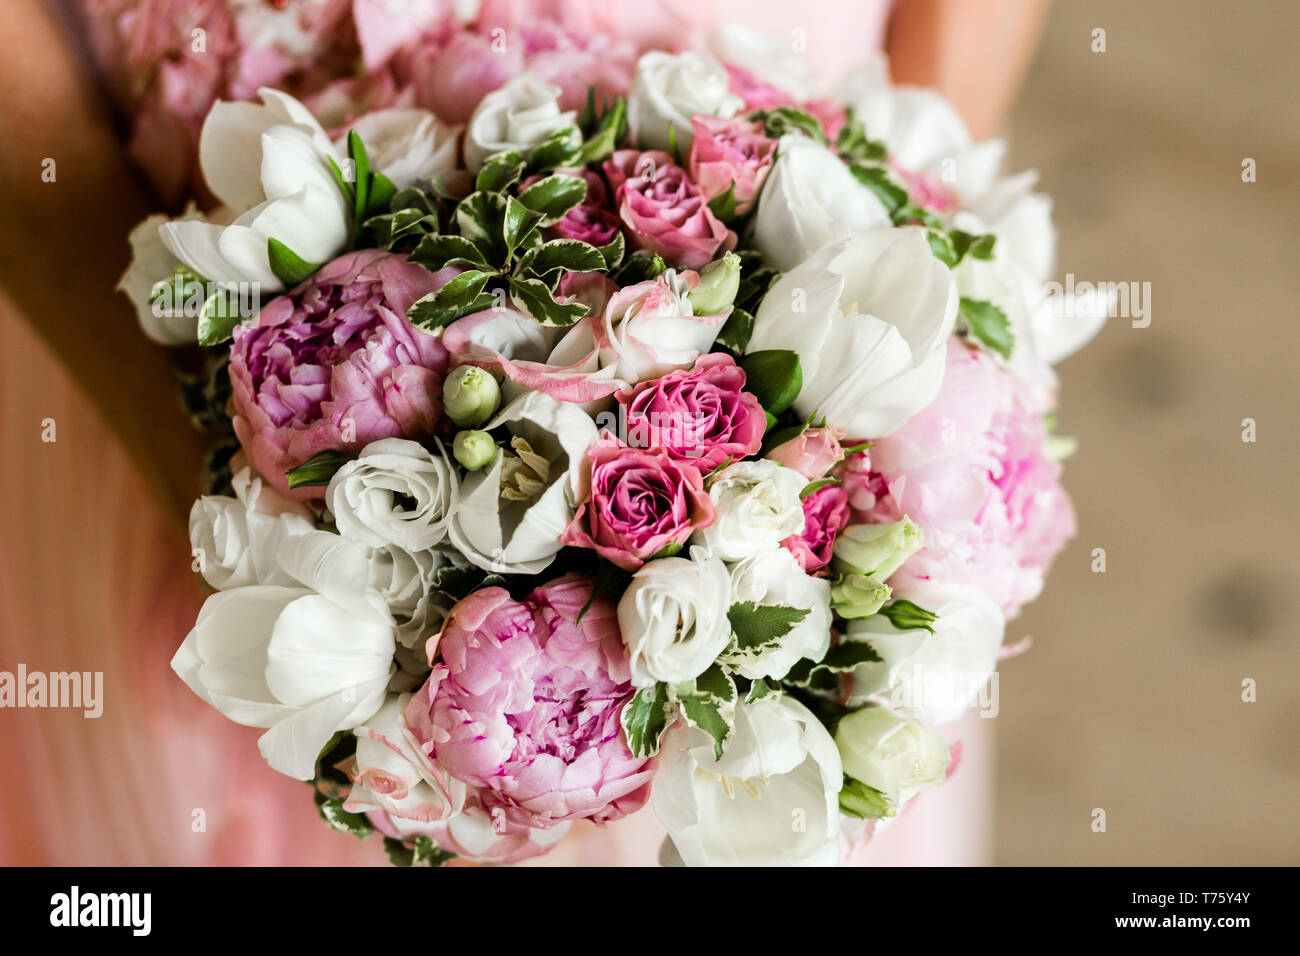 Bouquet Sposa Rose E Peonie.Unrecognizable Bride Holding A Refined Wedding Bouquet Of Pink